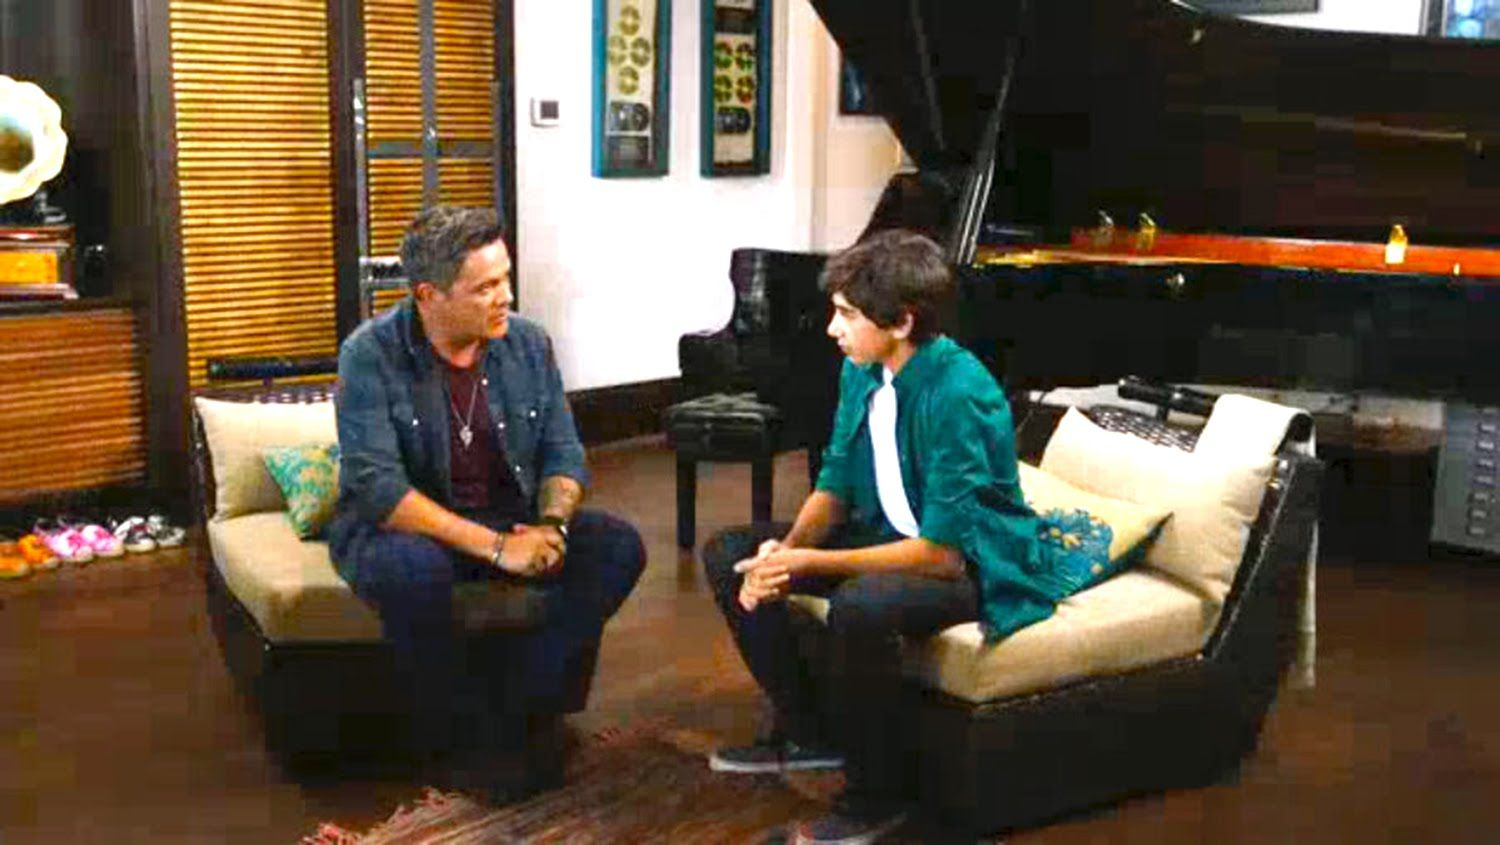 Alejandro Sanz Receives Alan Matheus In His Home Home If I Stay Alan